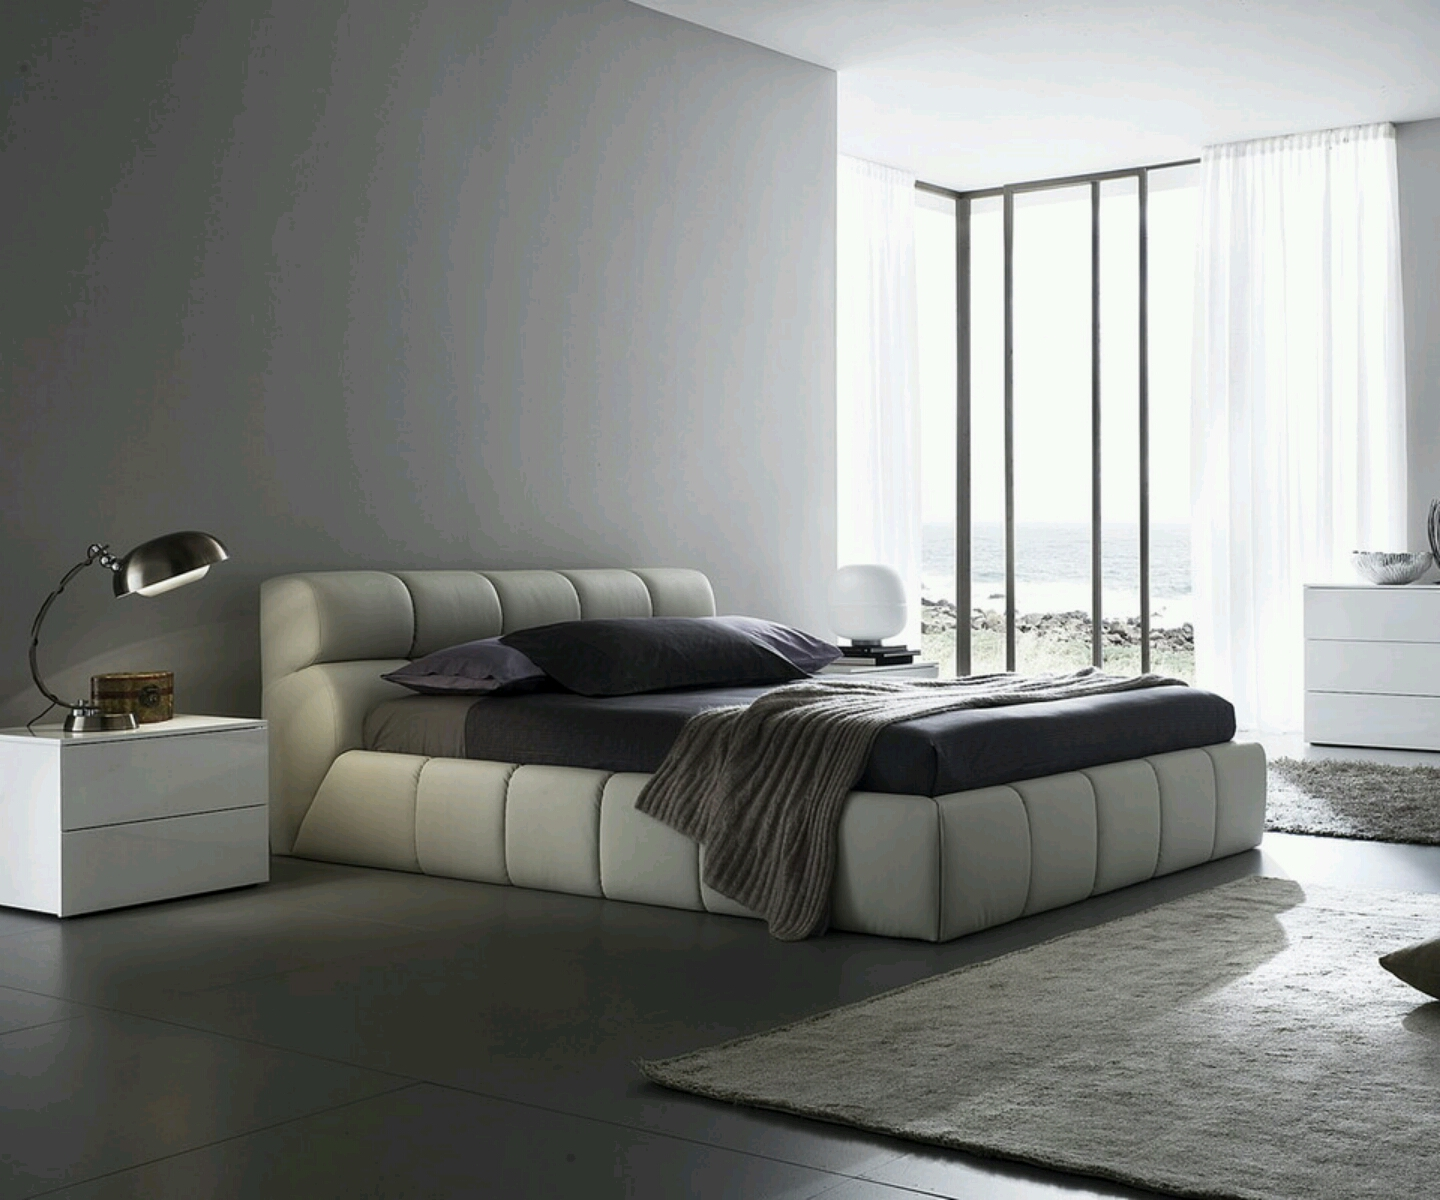 Modern furniture modern bed designs beautiful bedrooms designs ideas - Design for bedroom pics ...